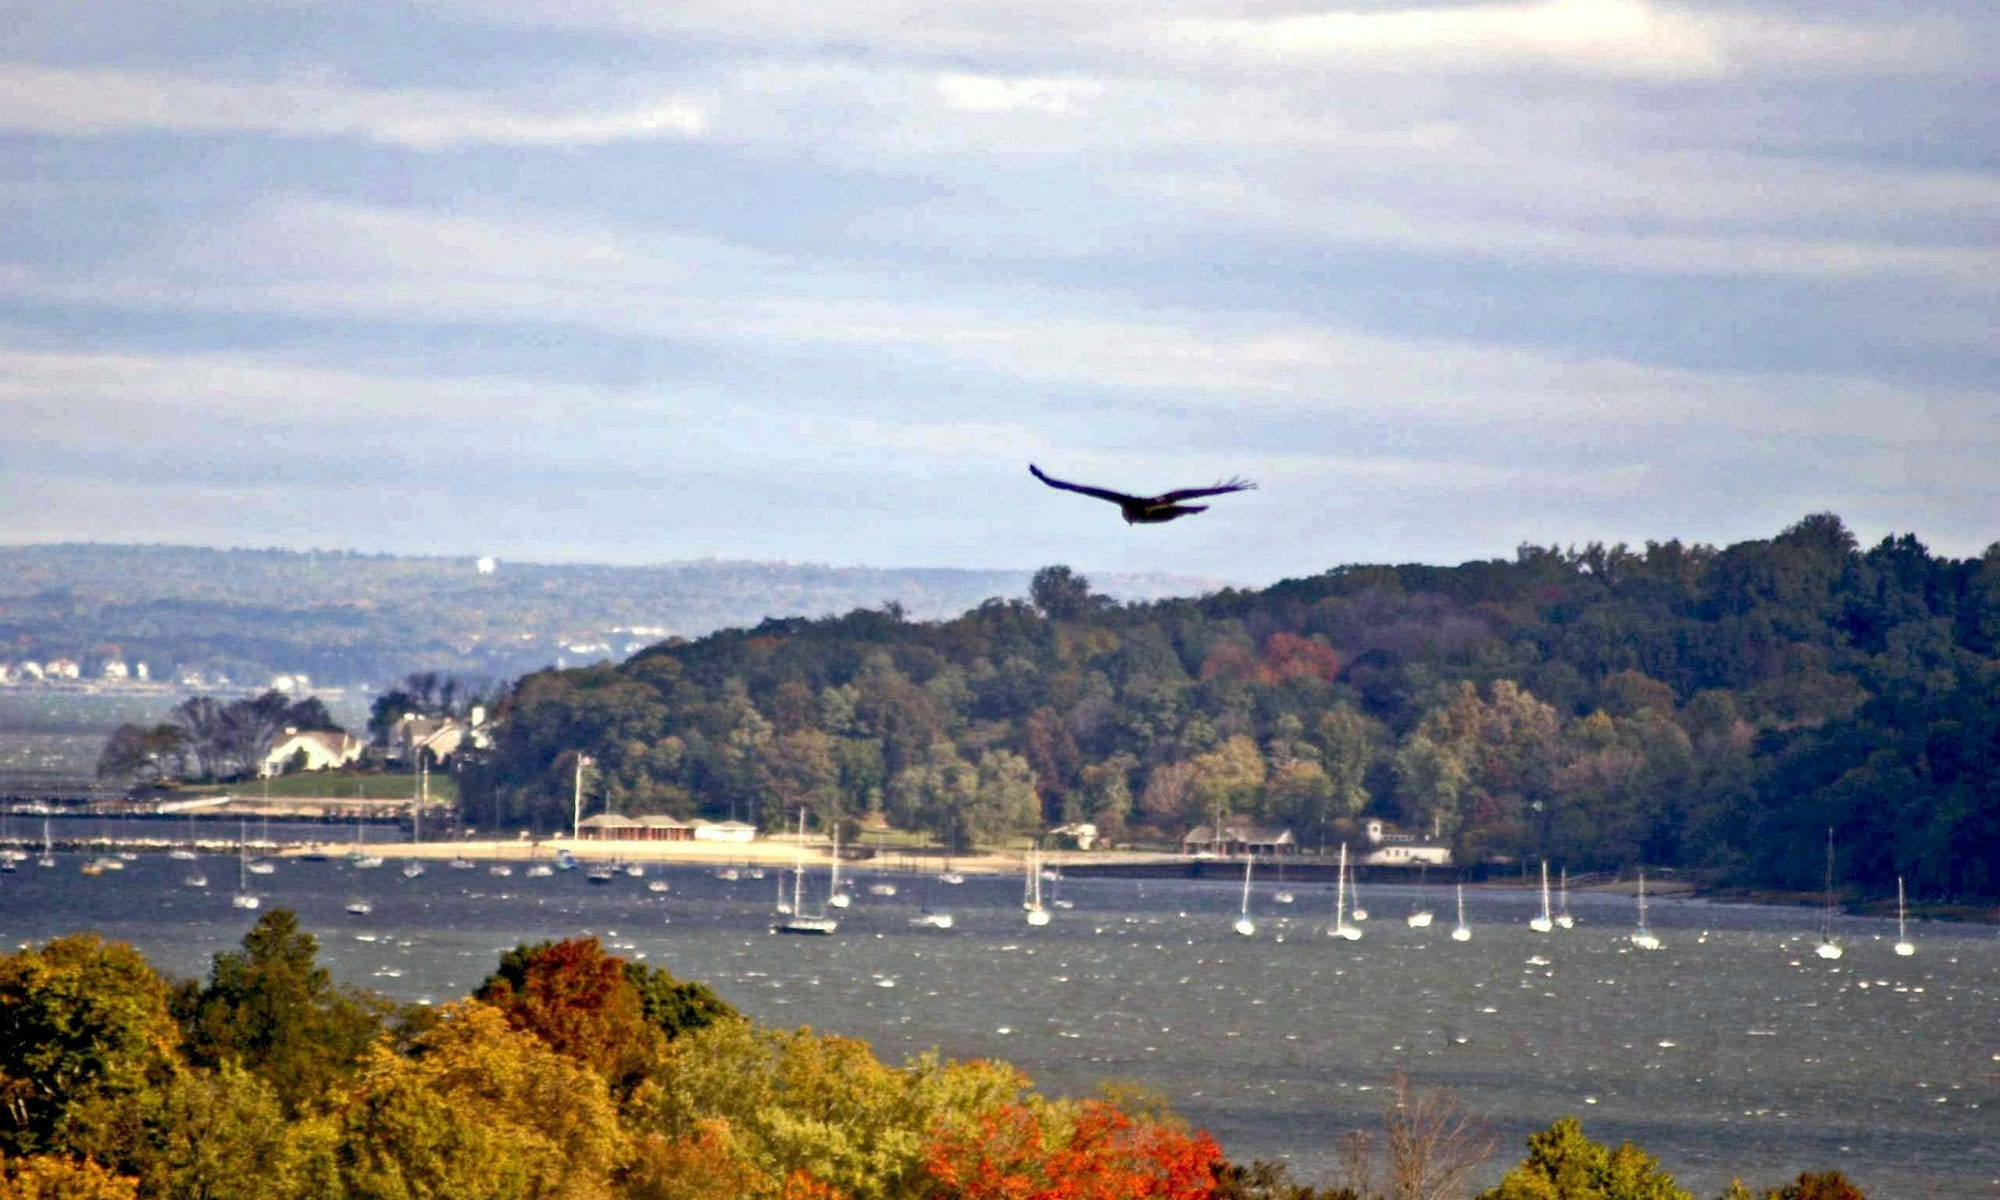 Image of Osprey flying over Fall foliage in the Harbor